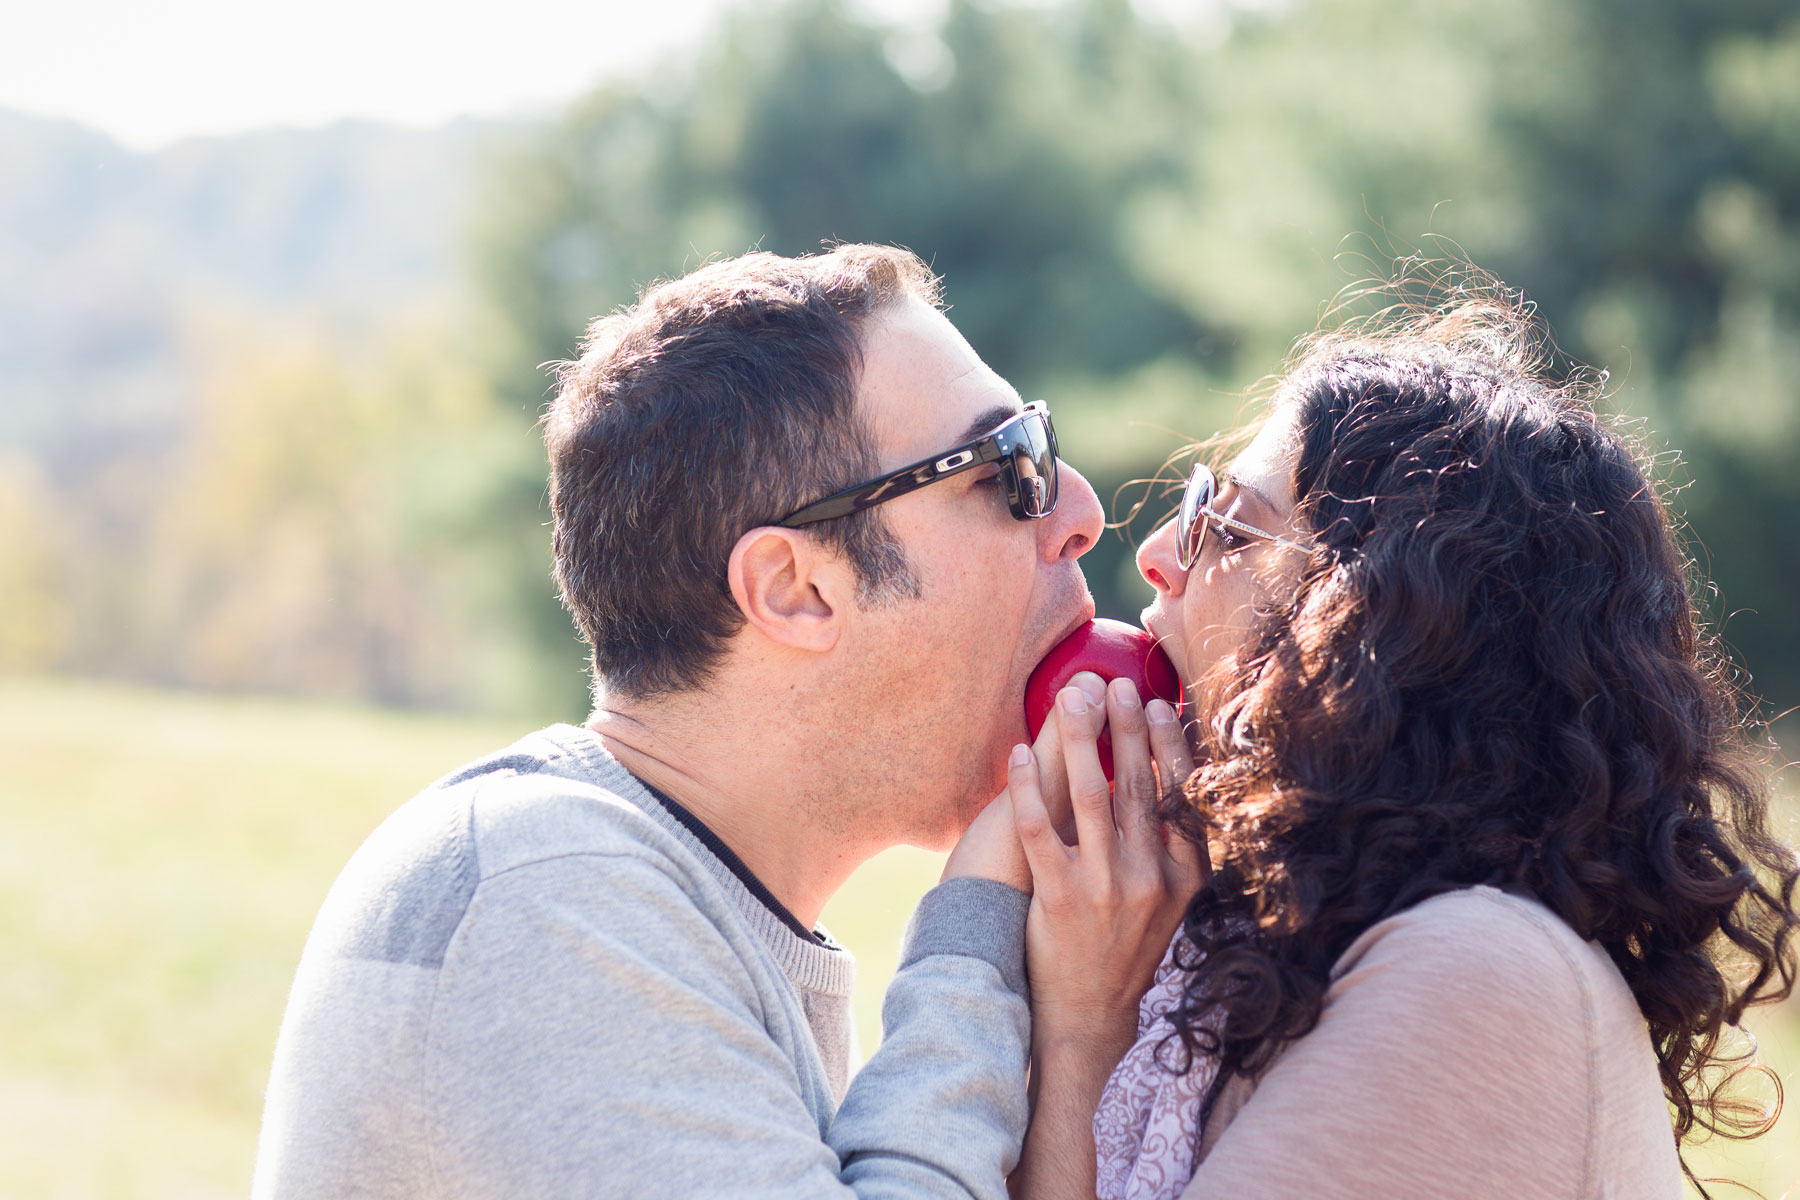 engagement-portrait-apple-orchard-couple-eats-apple-together